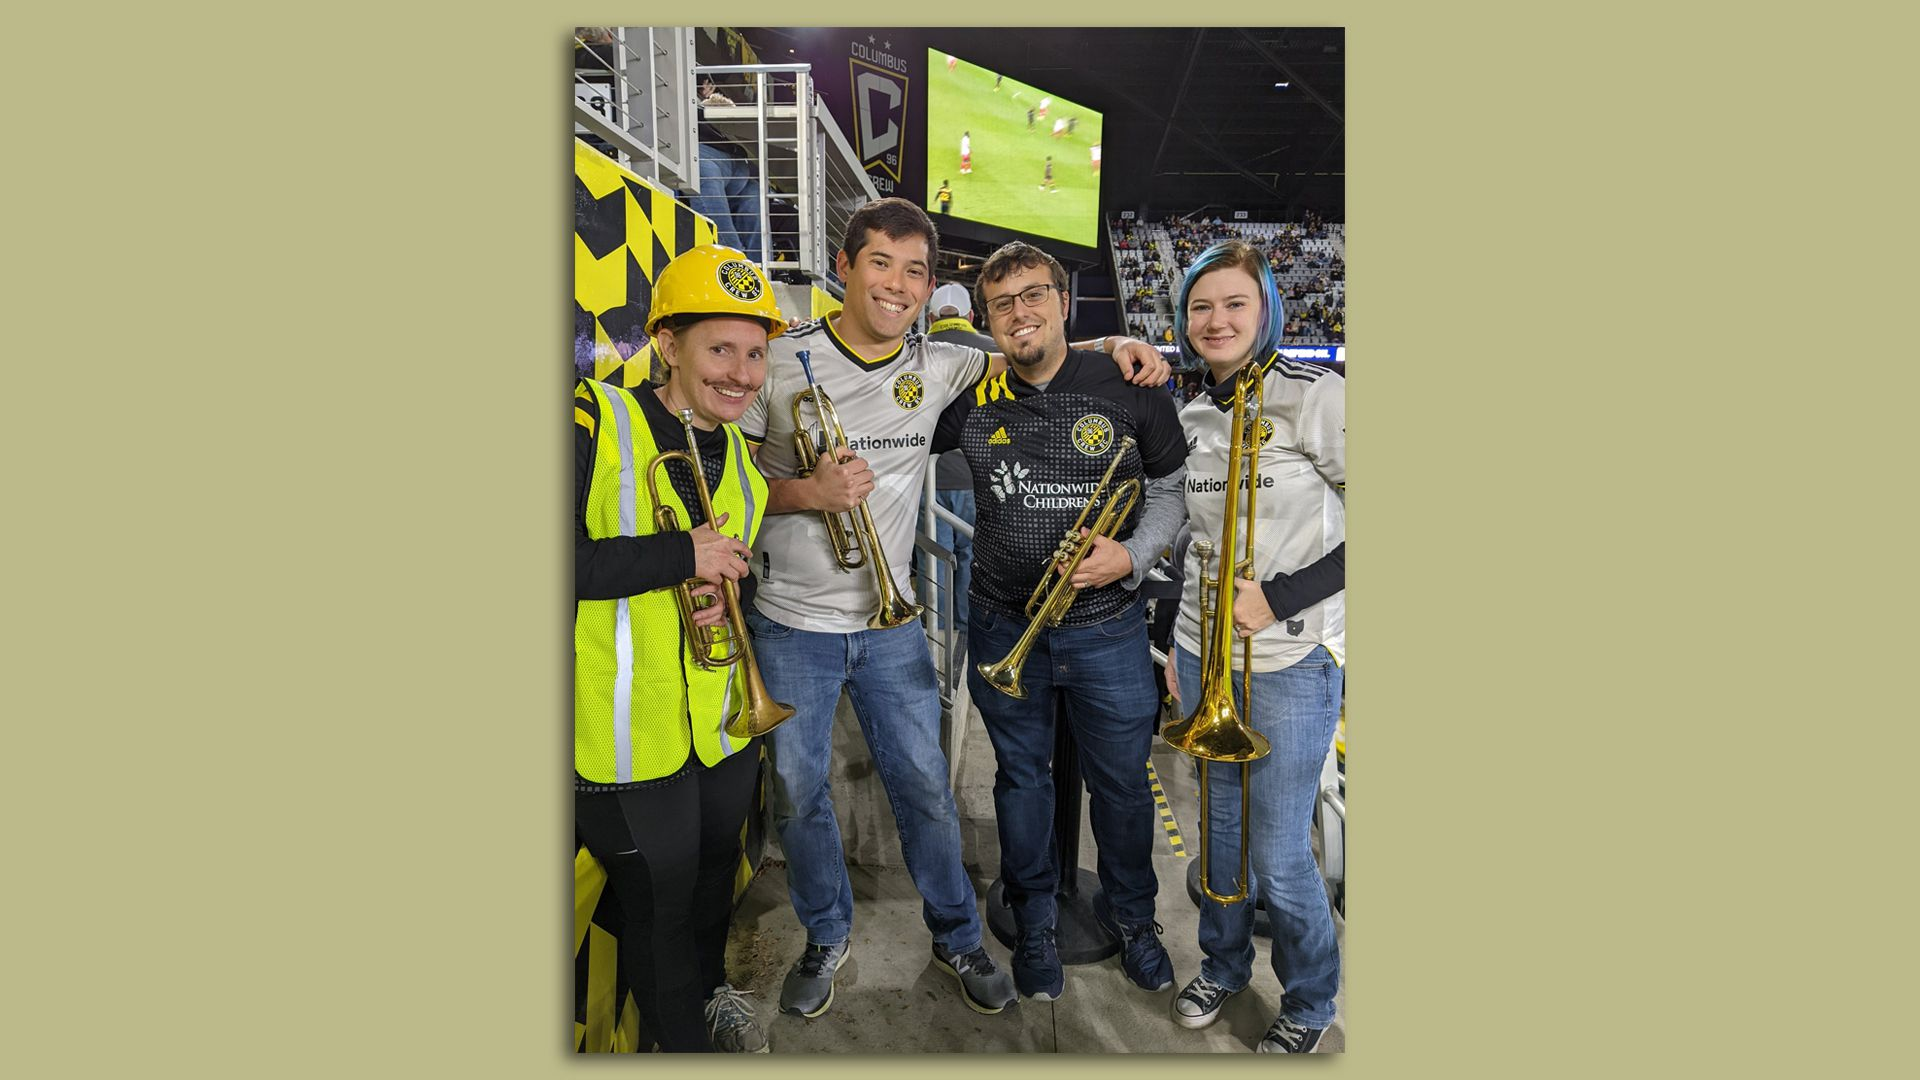 Four trumpet and trombone players pose at a soccer game, wearing the team's attire.